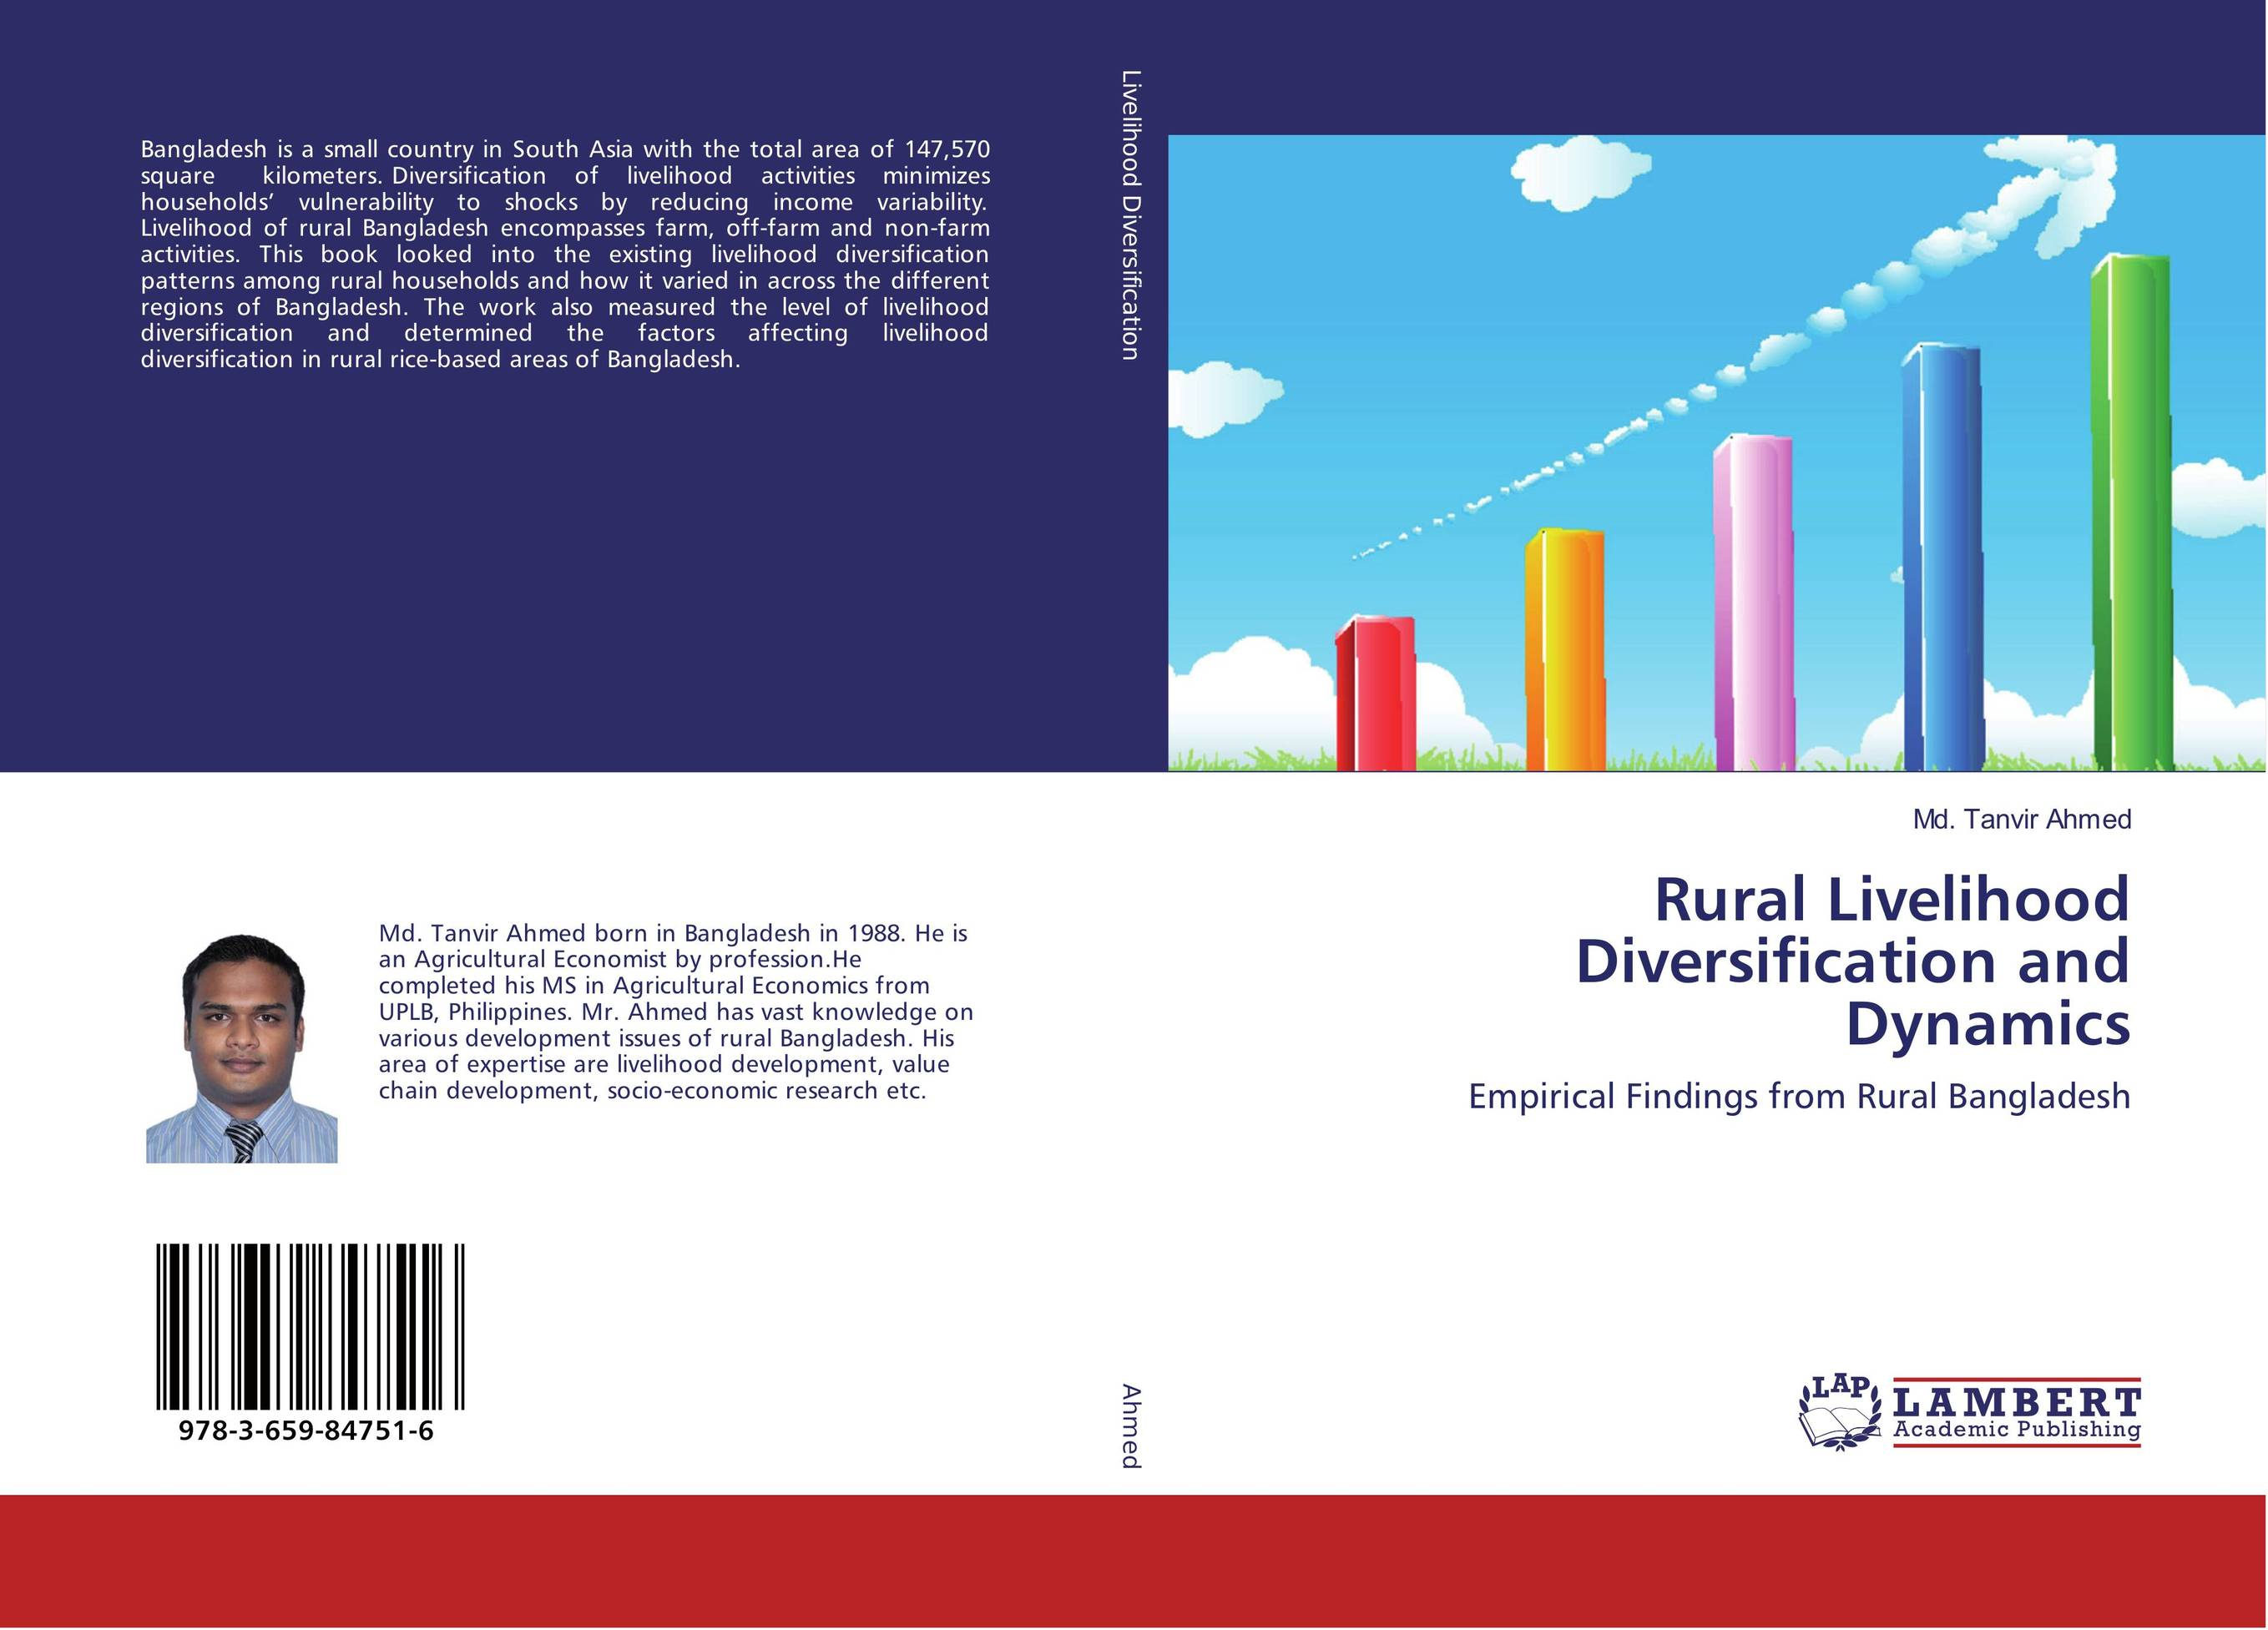 Rural Livelihood Diversification and Dynamics impact of micro enterprises on plant diversity and rural livelihood